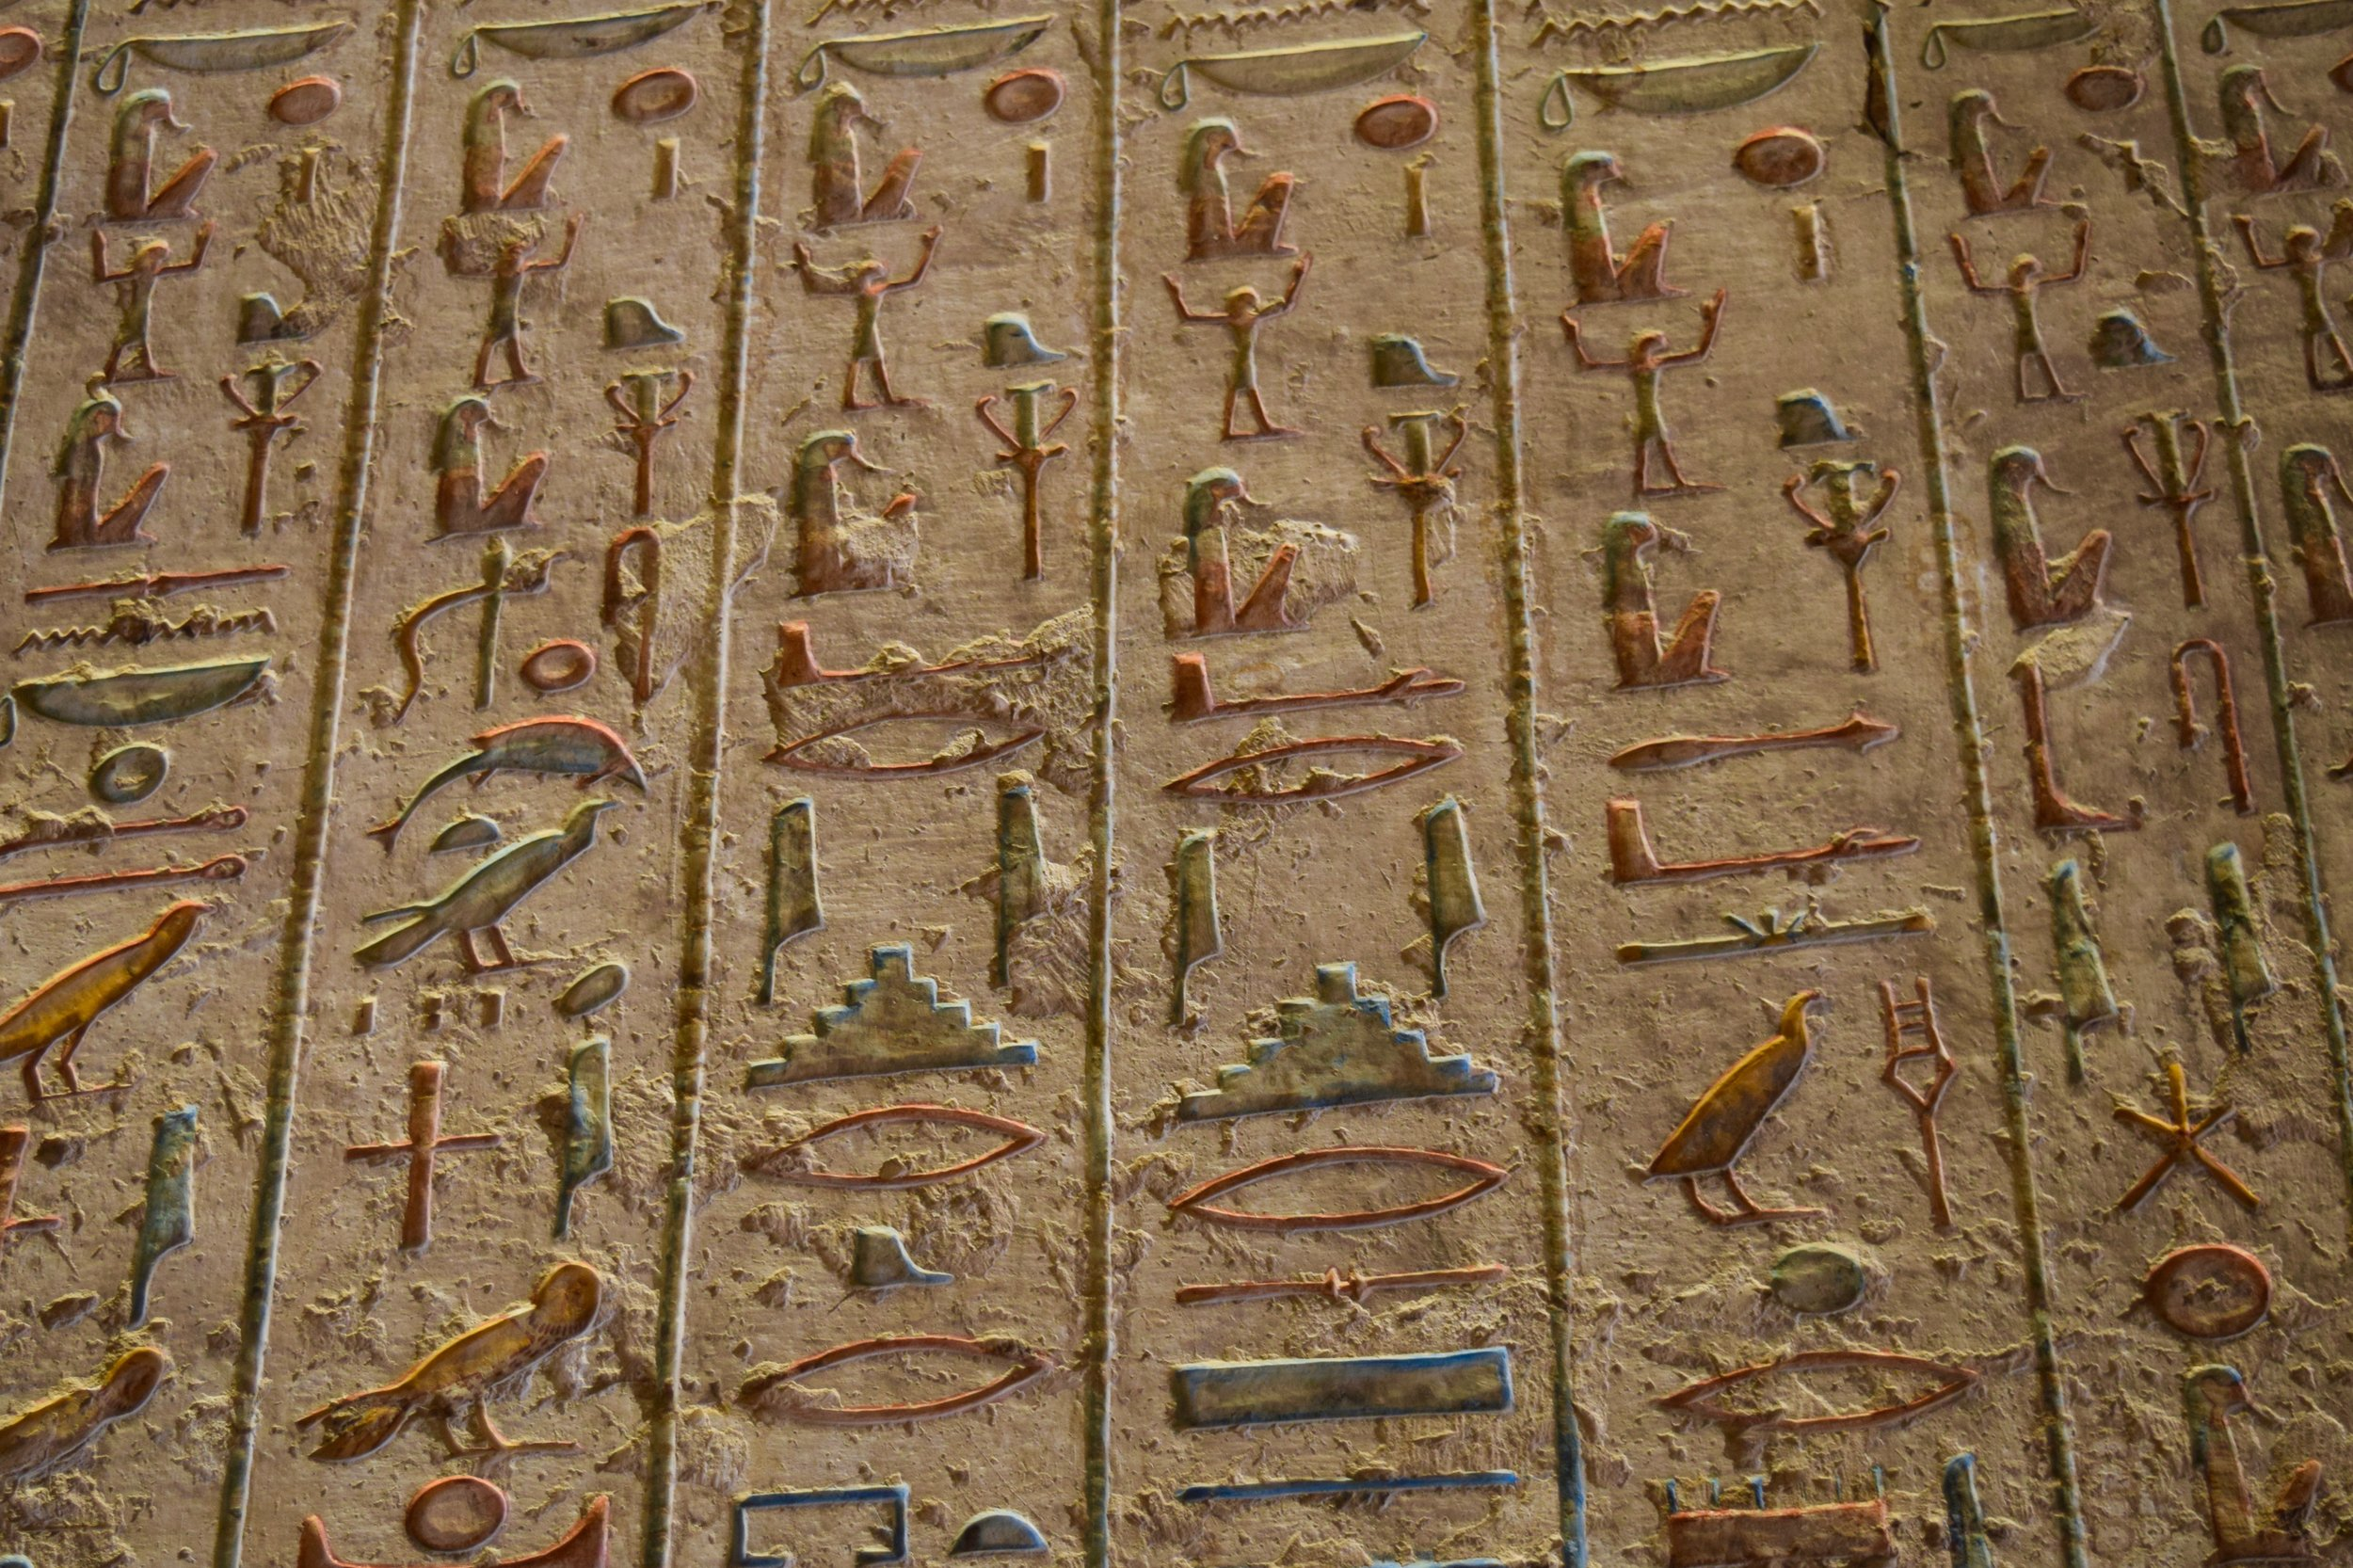 Hieroglyphs inside the tomb of Ramses II